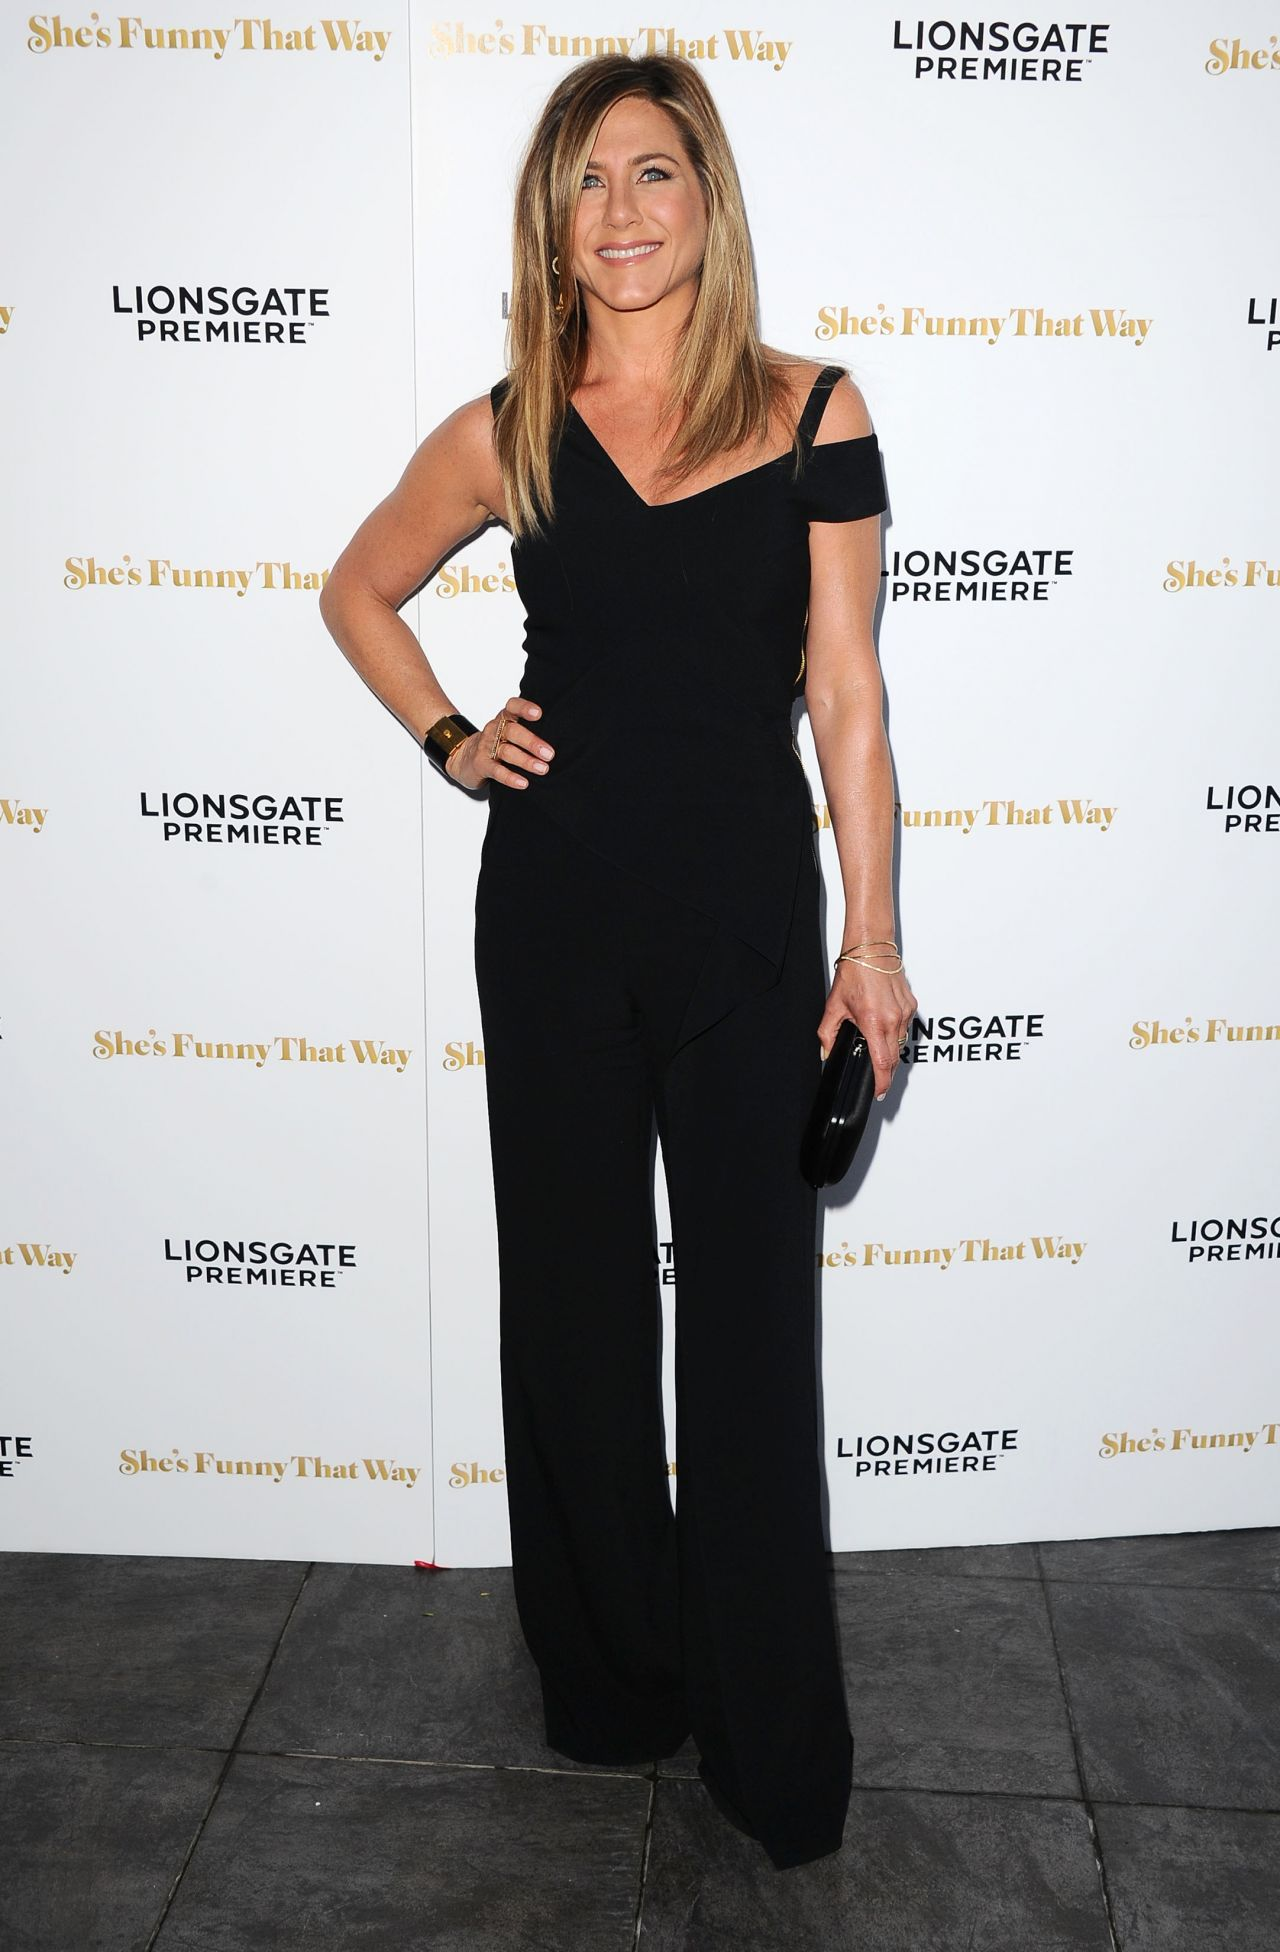 jennifer-aniston-in-roland-mouret-shes-funny-that-way-la-premiere